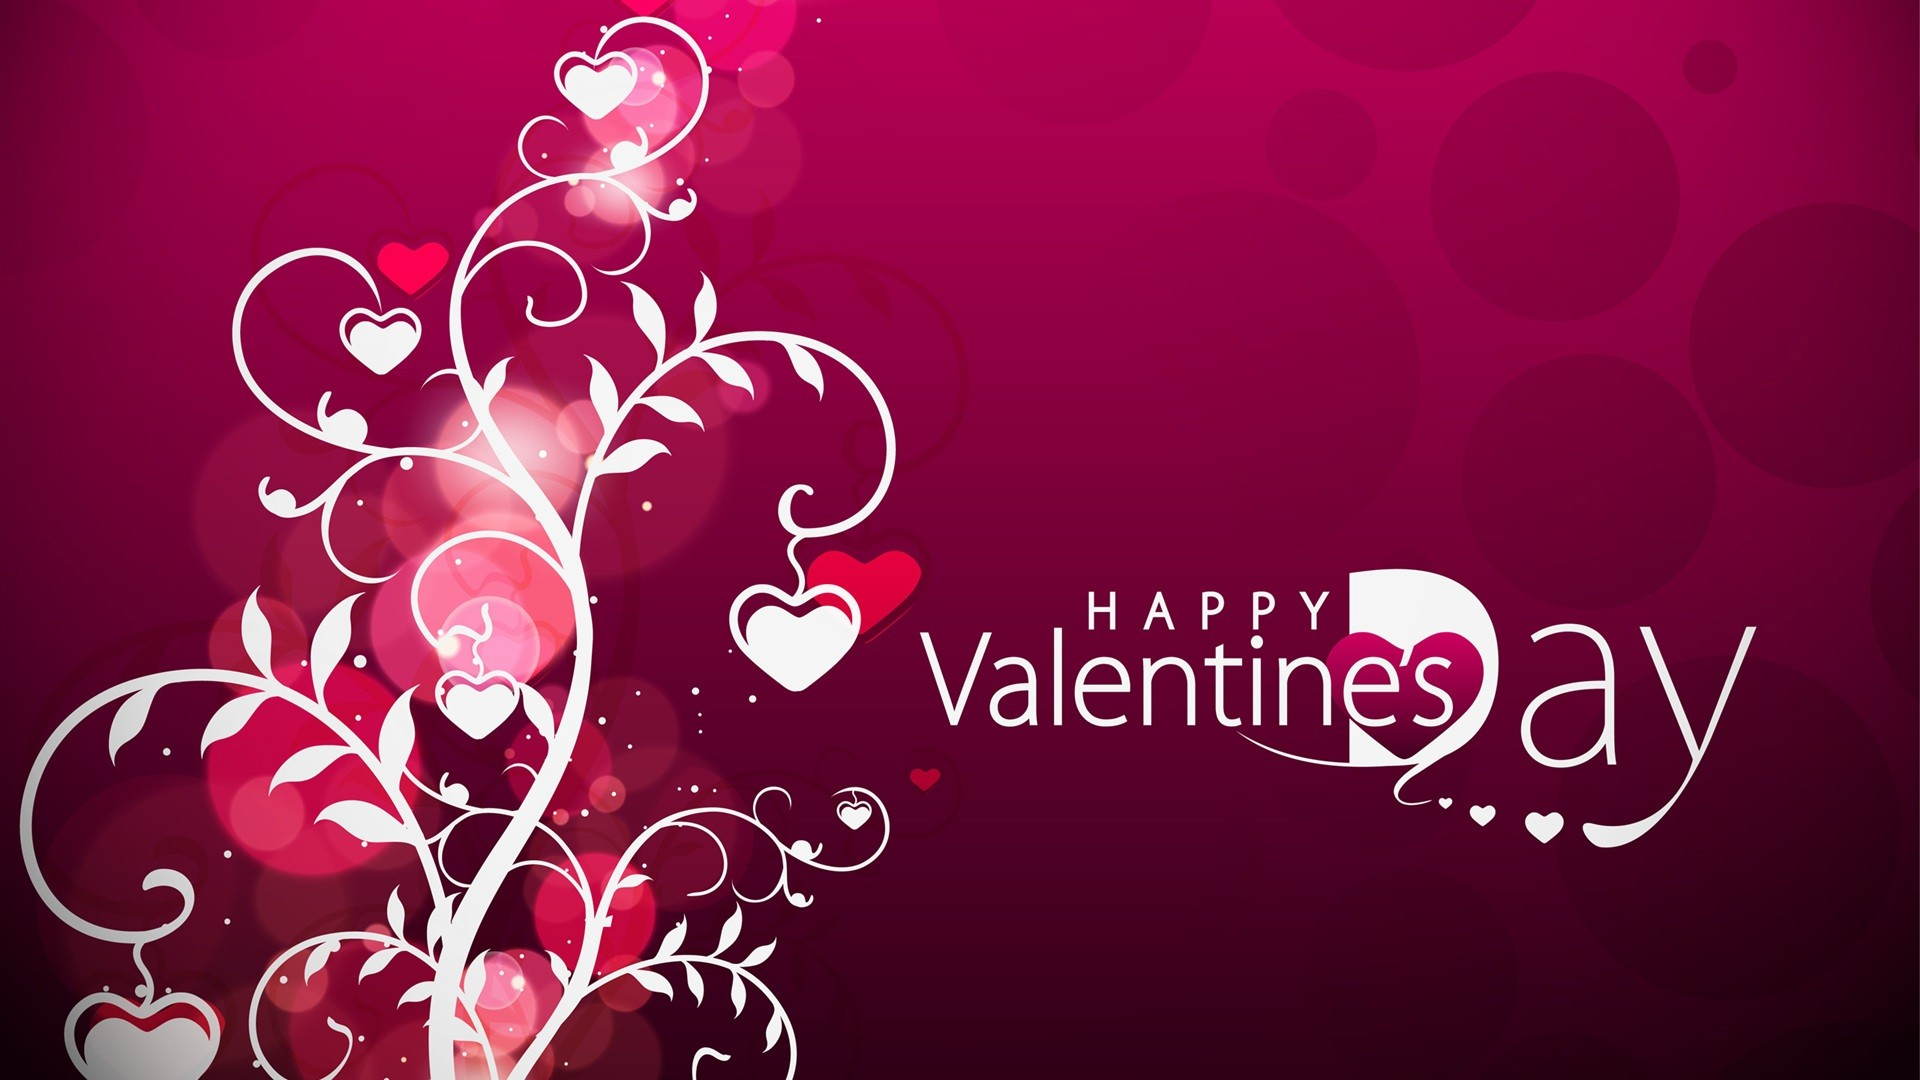 Happy Valentines Day Wallpapers 30 1920x1080